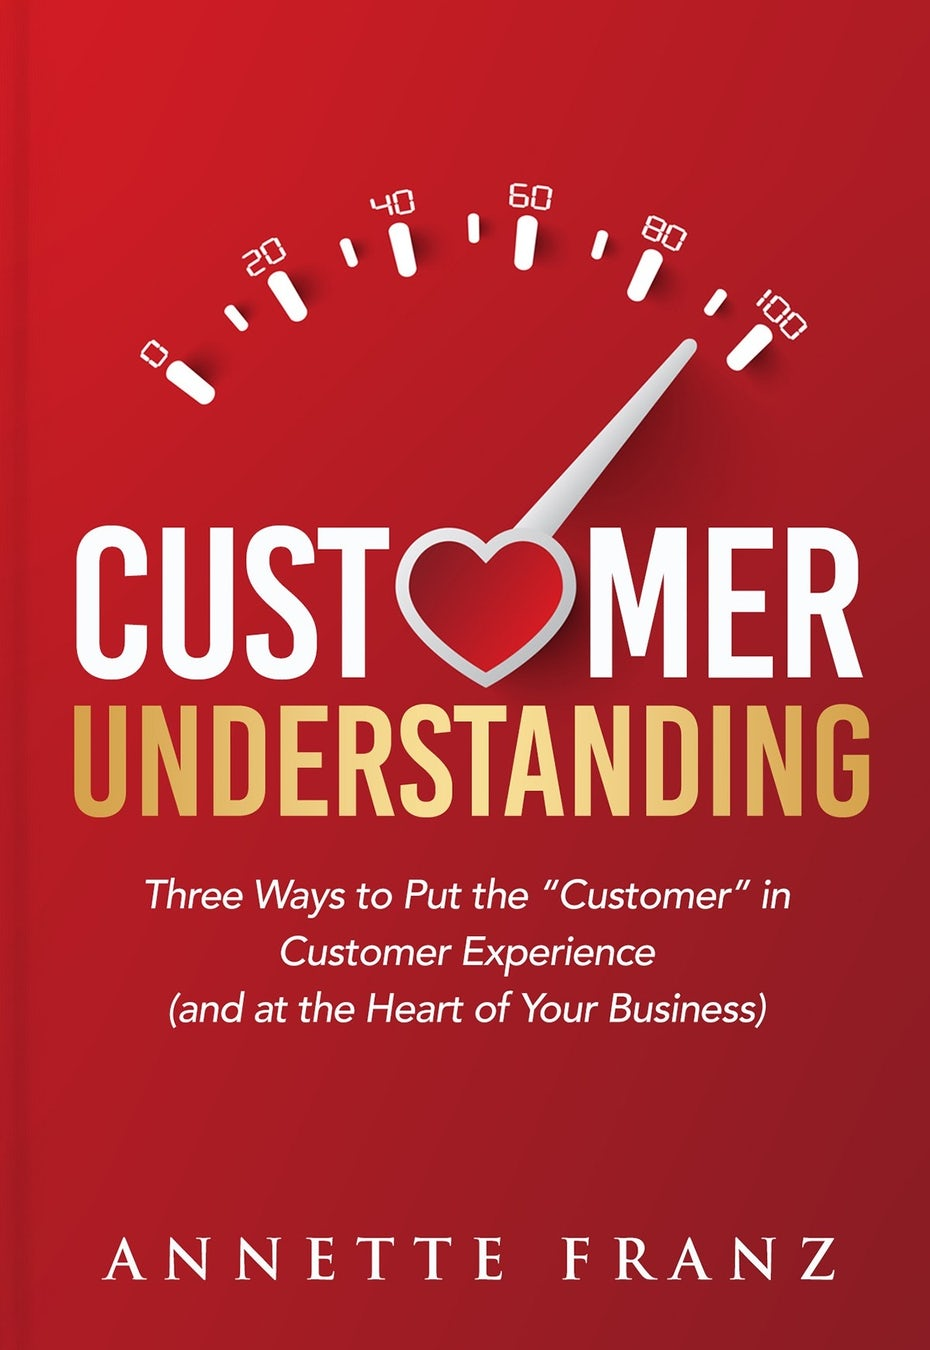 book cover design on customer understanding with scale and heart